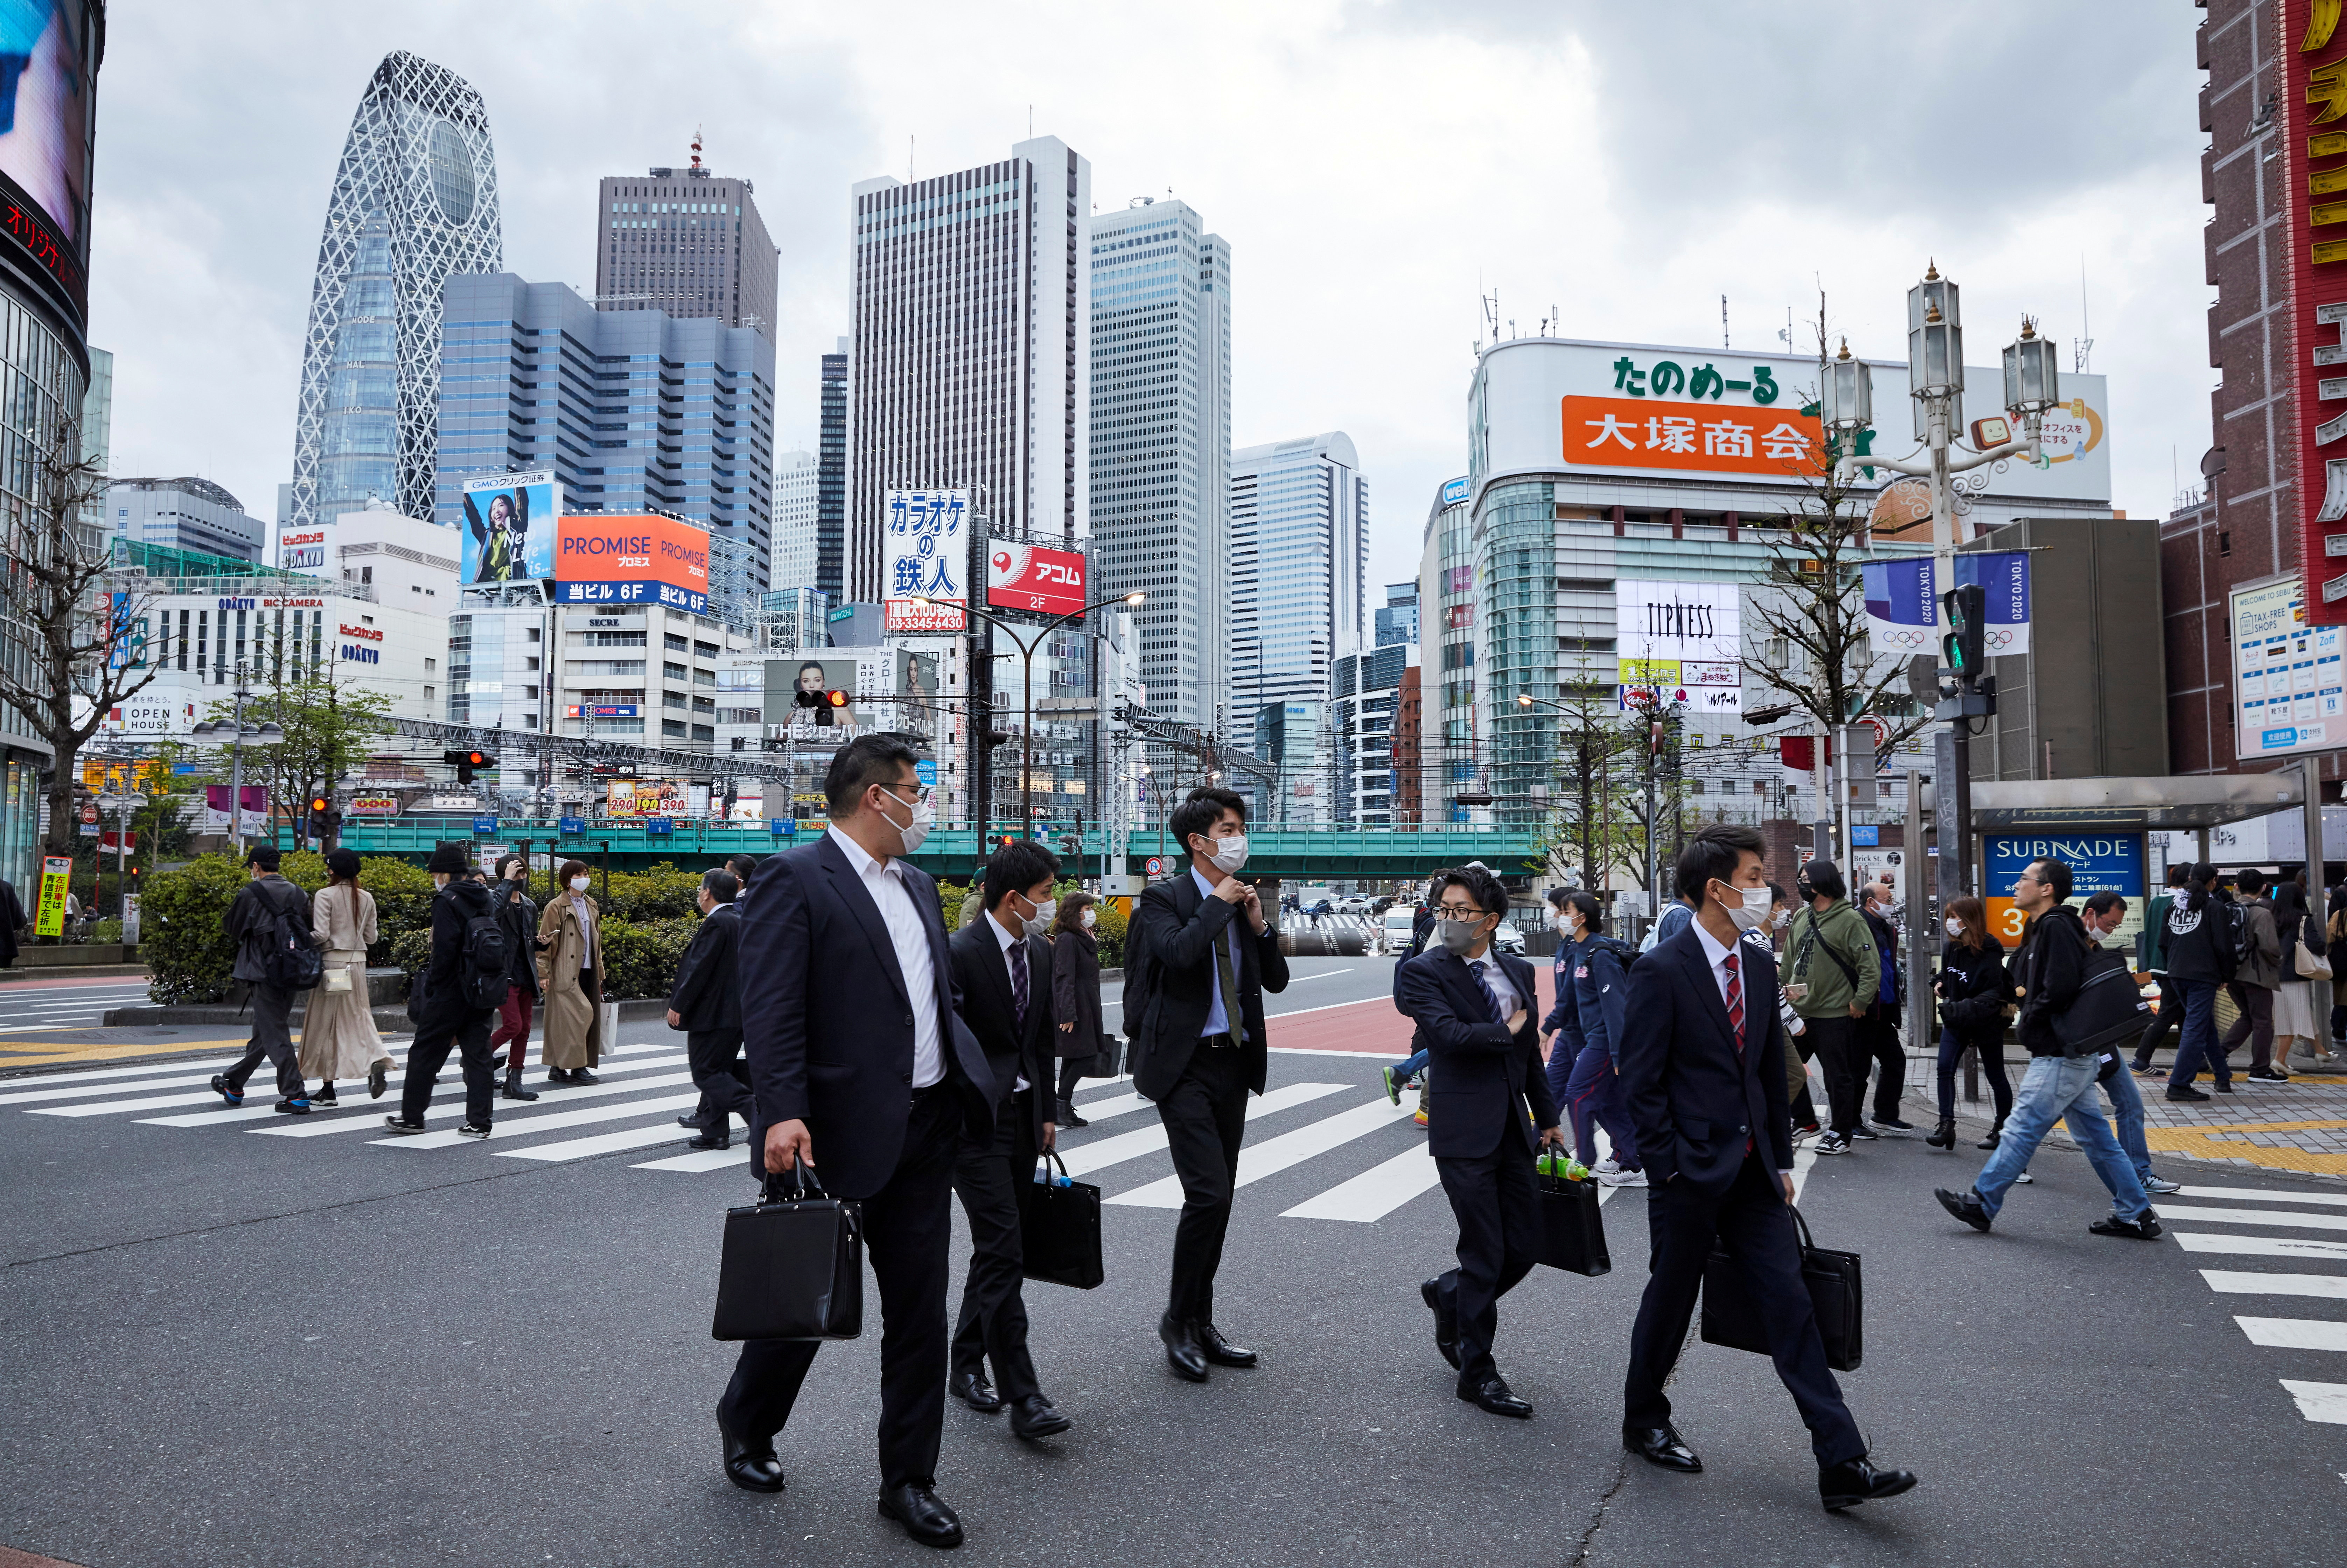 Passersby wearing protective masks during the COVID-19 pandemic walk on the street at Shinjuku district in Tokyo, Japan April 6, 2021.